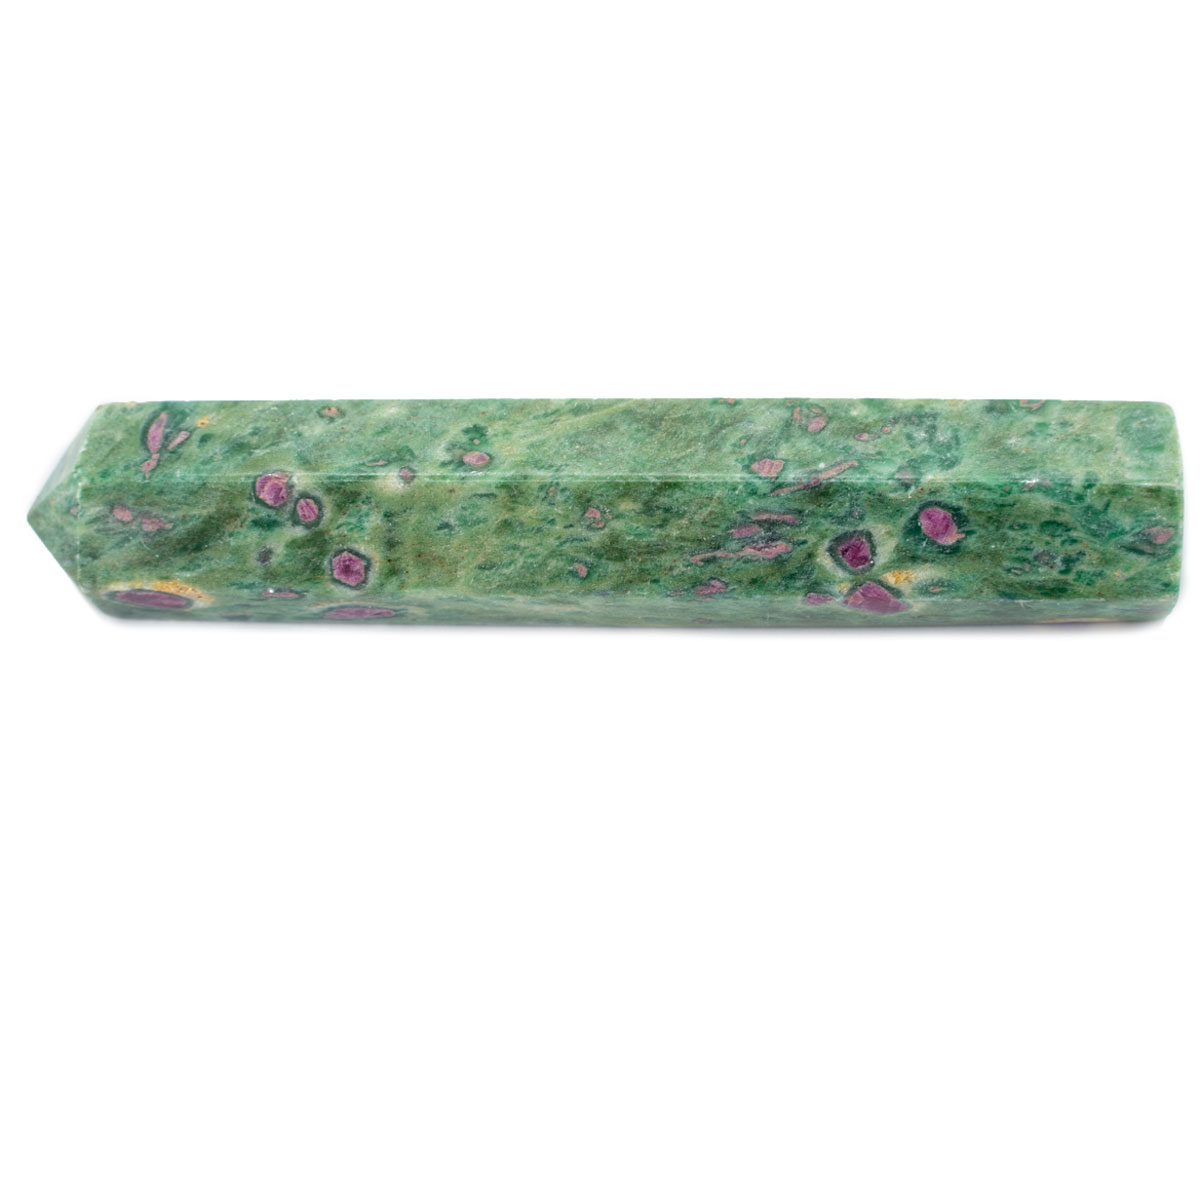 Sri Avinash Infused™ Ruby in Zoisite Single-Terminated Healing Wand - Love & Compassion Infusion